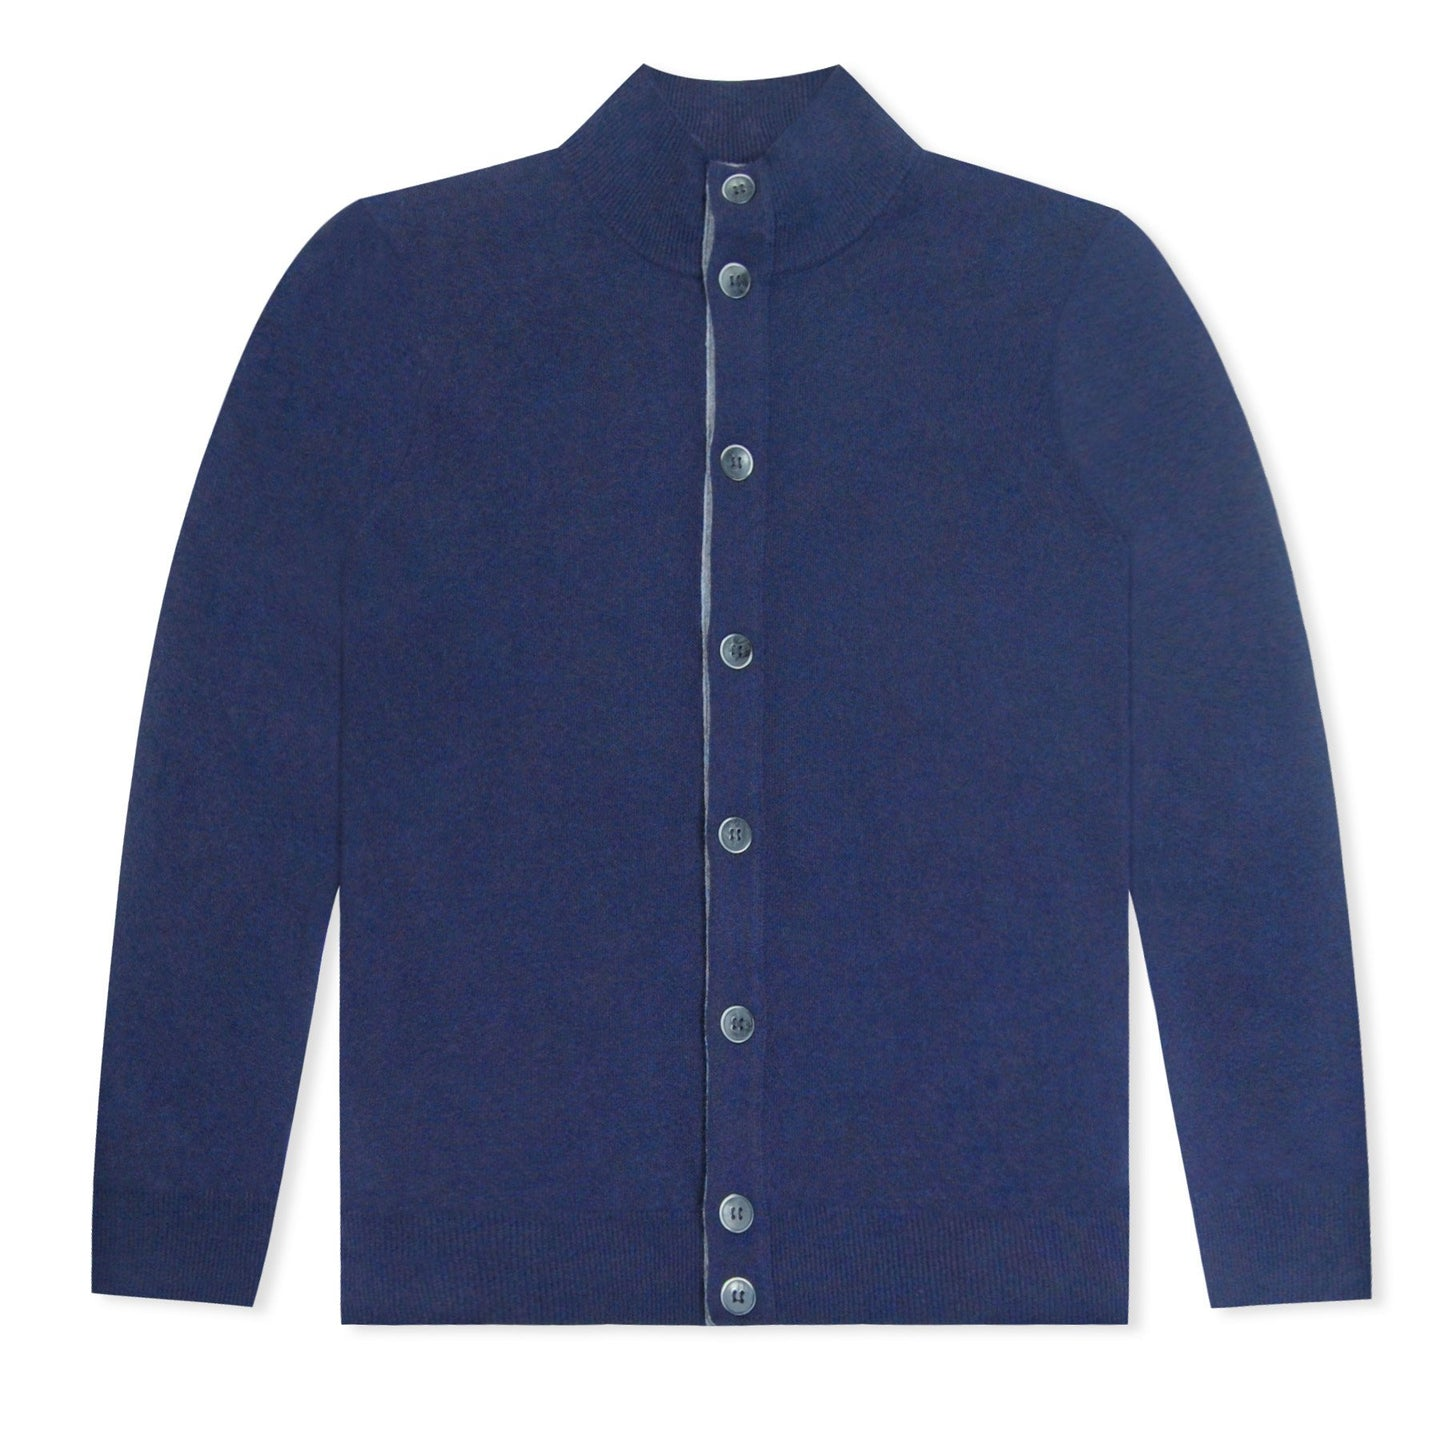 Untitled Atelier Merino Button Through Cardigan - Navy